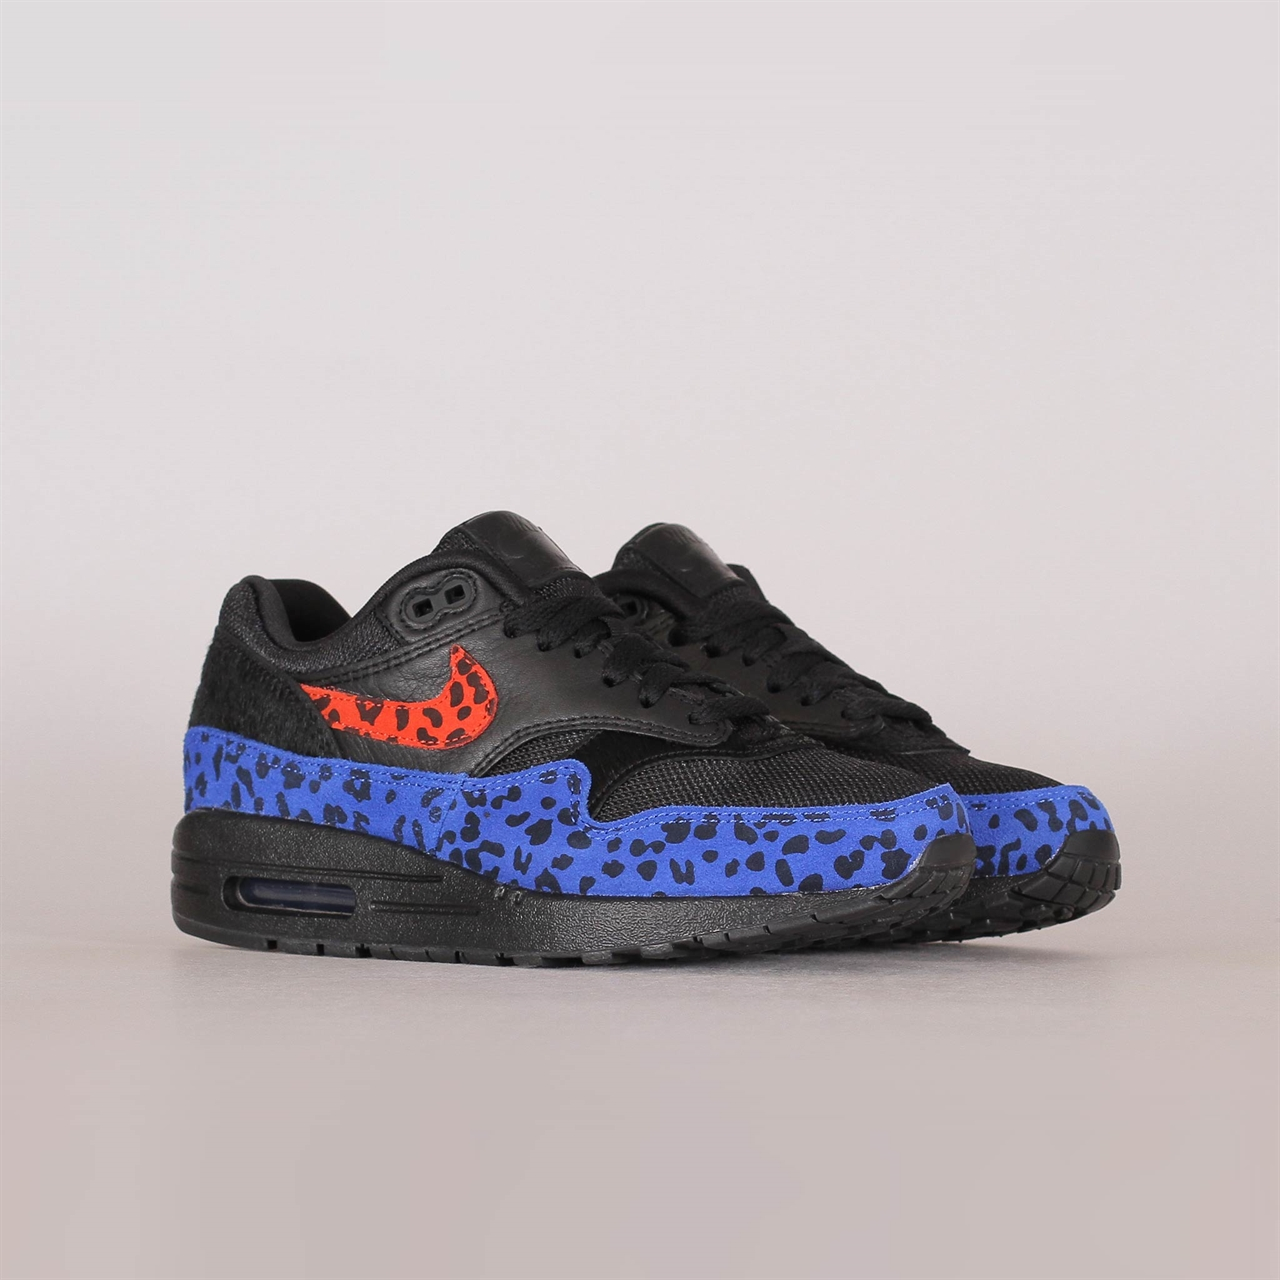 pretty nice bac2c 8b247 Womens Air Max 1 Premium Black Leopard (BV1977-001)